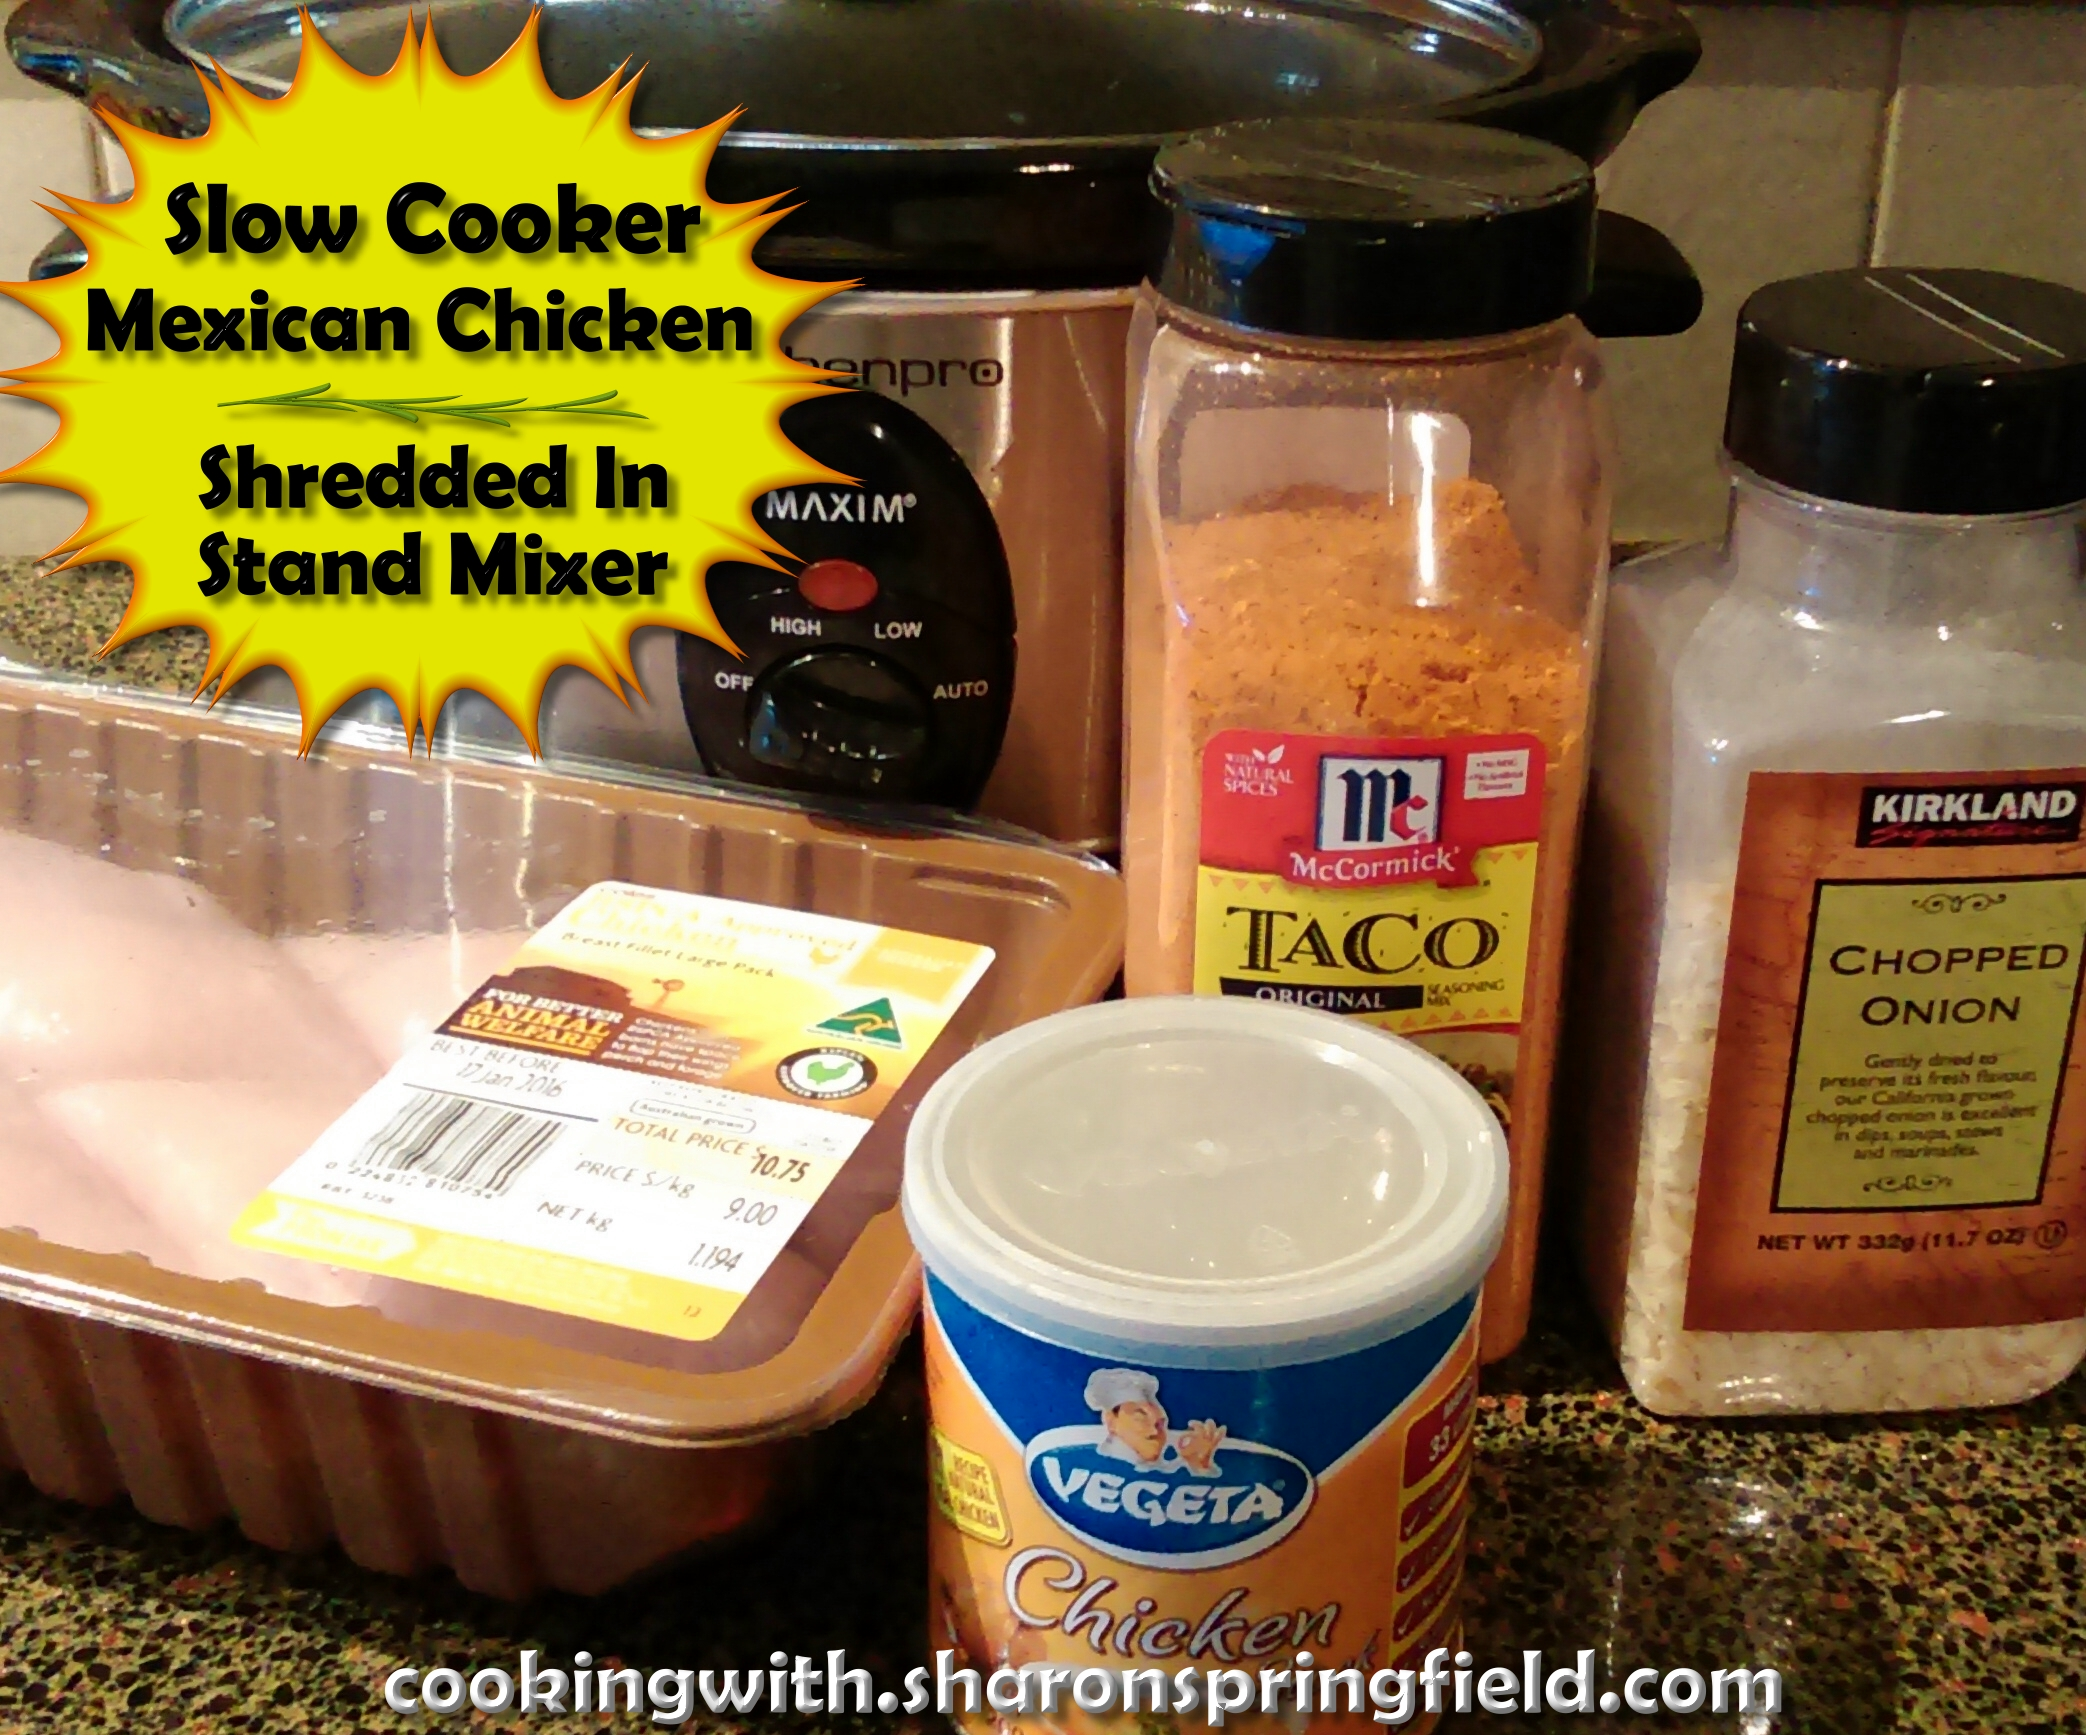 Slow Cooker Mexican Chicken Shredded In Stand Mixer